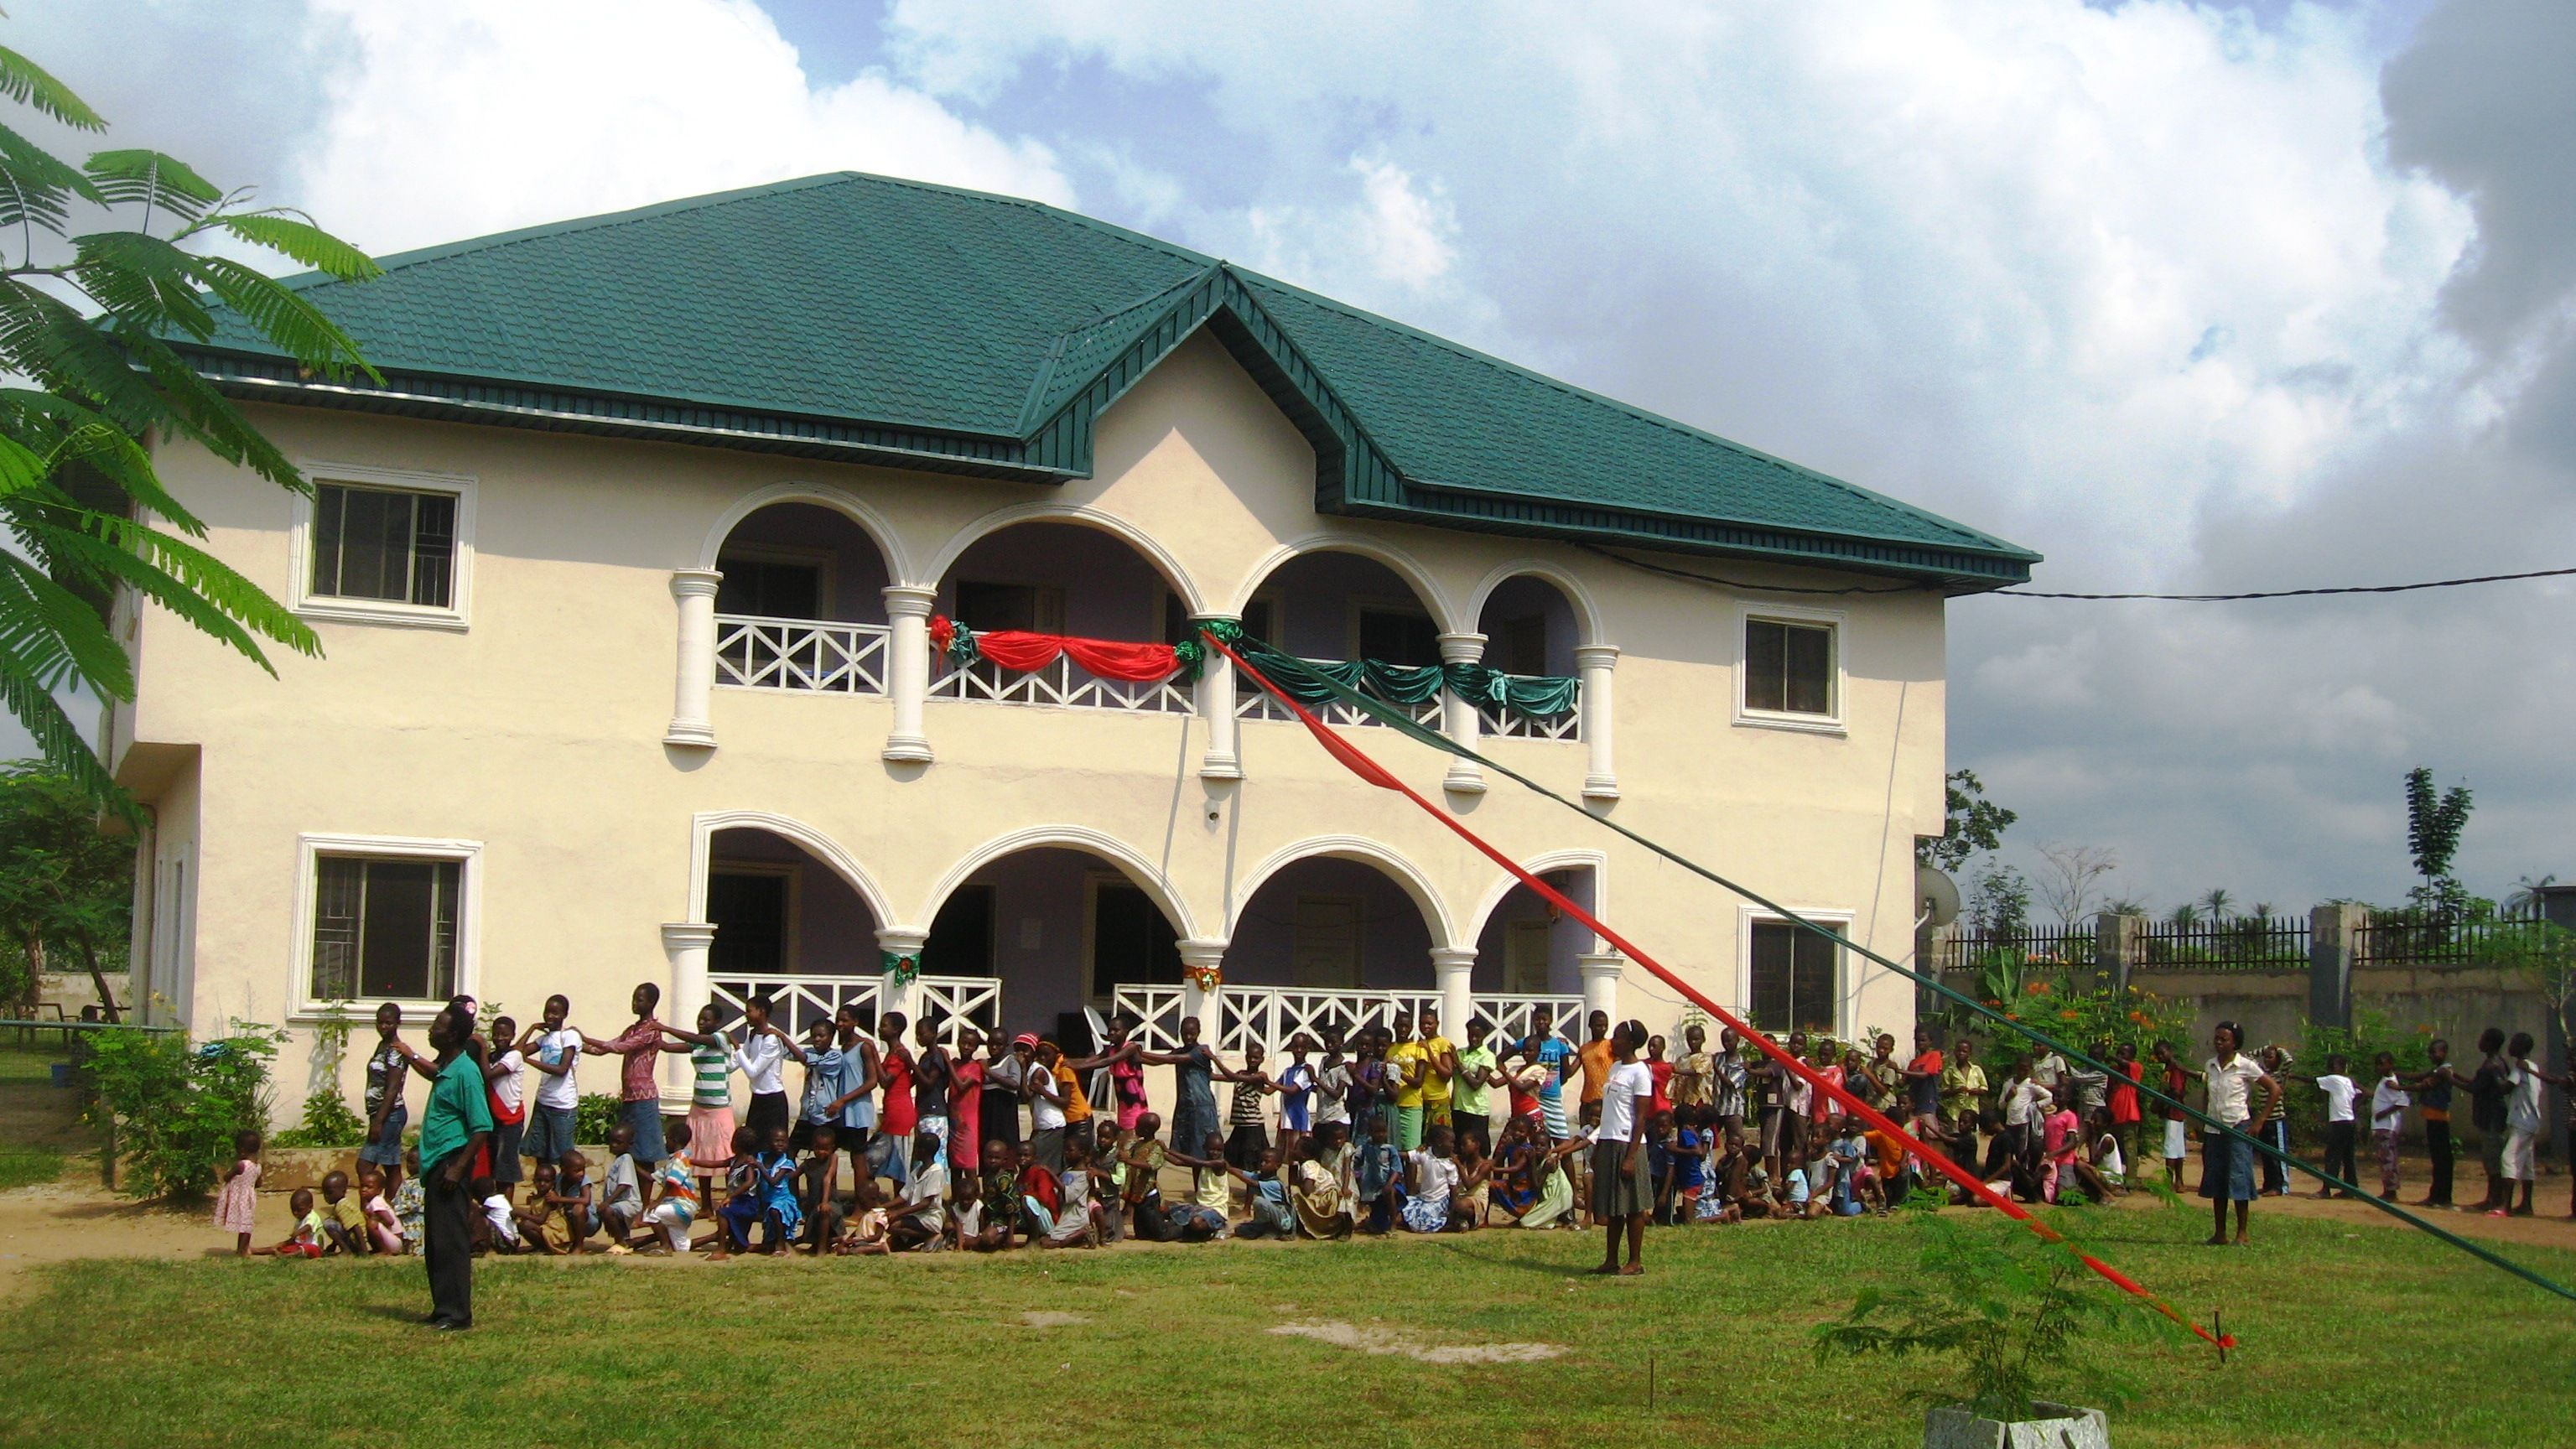 Shepherd Care Orphanage (600 dpi).jpg